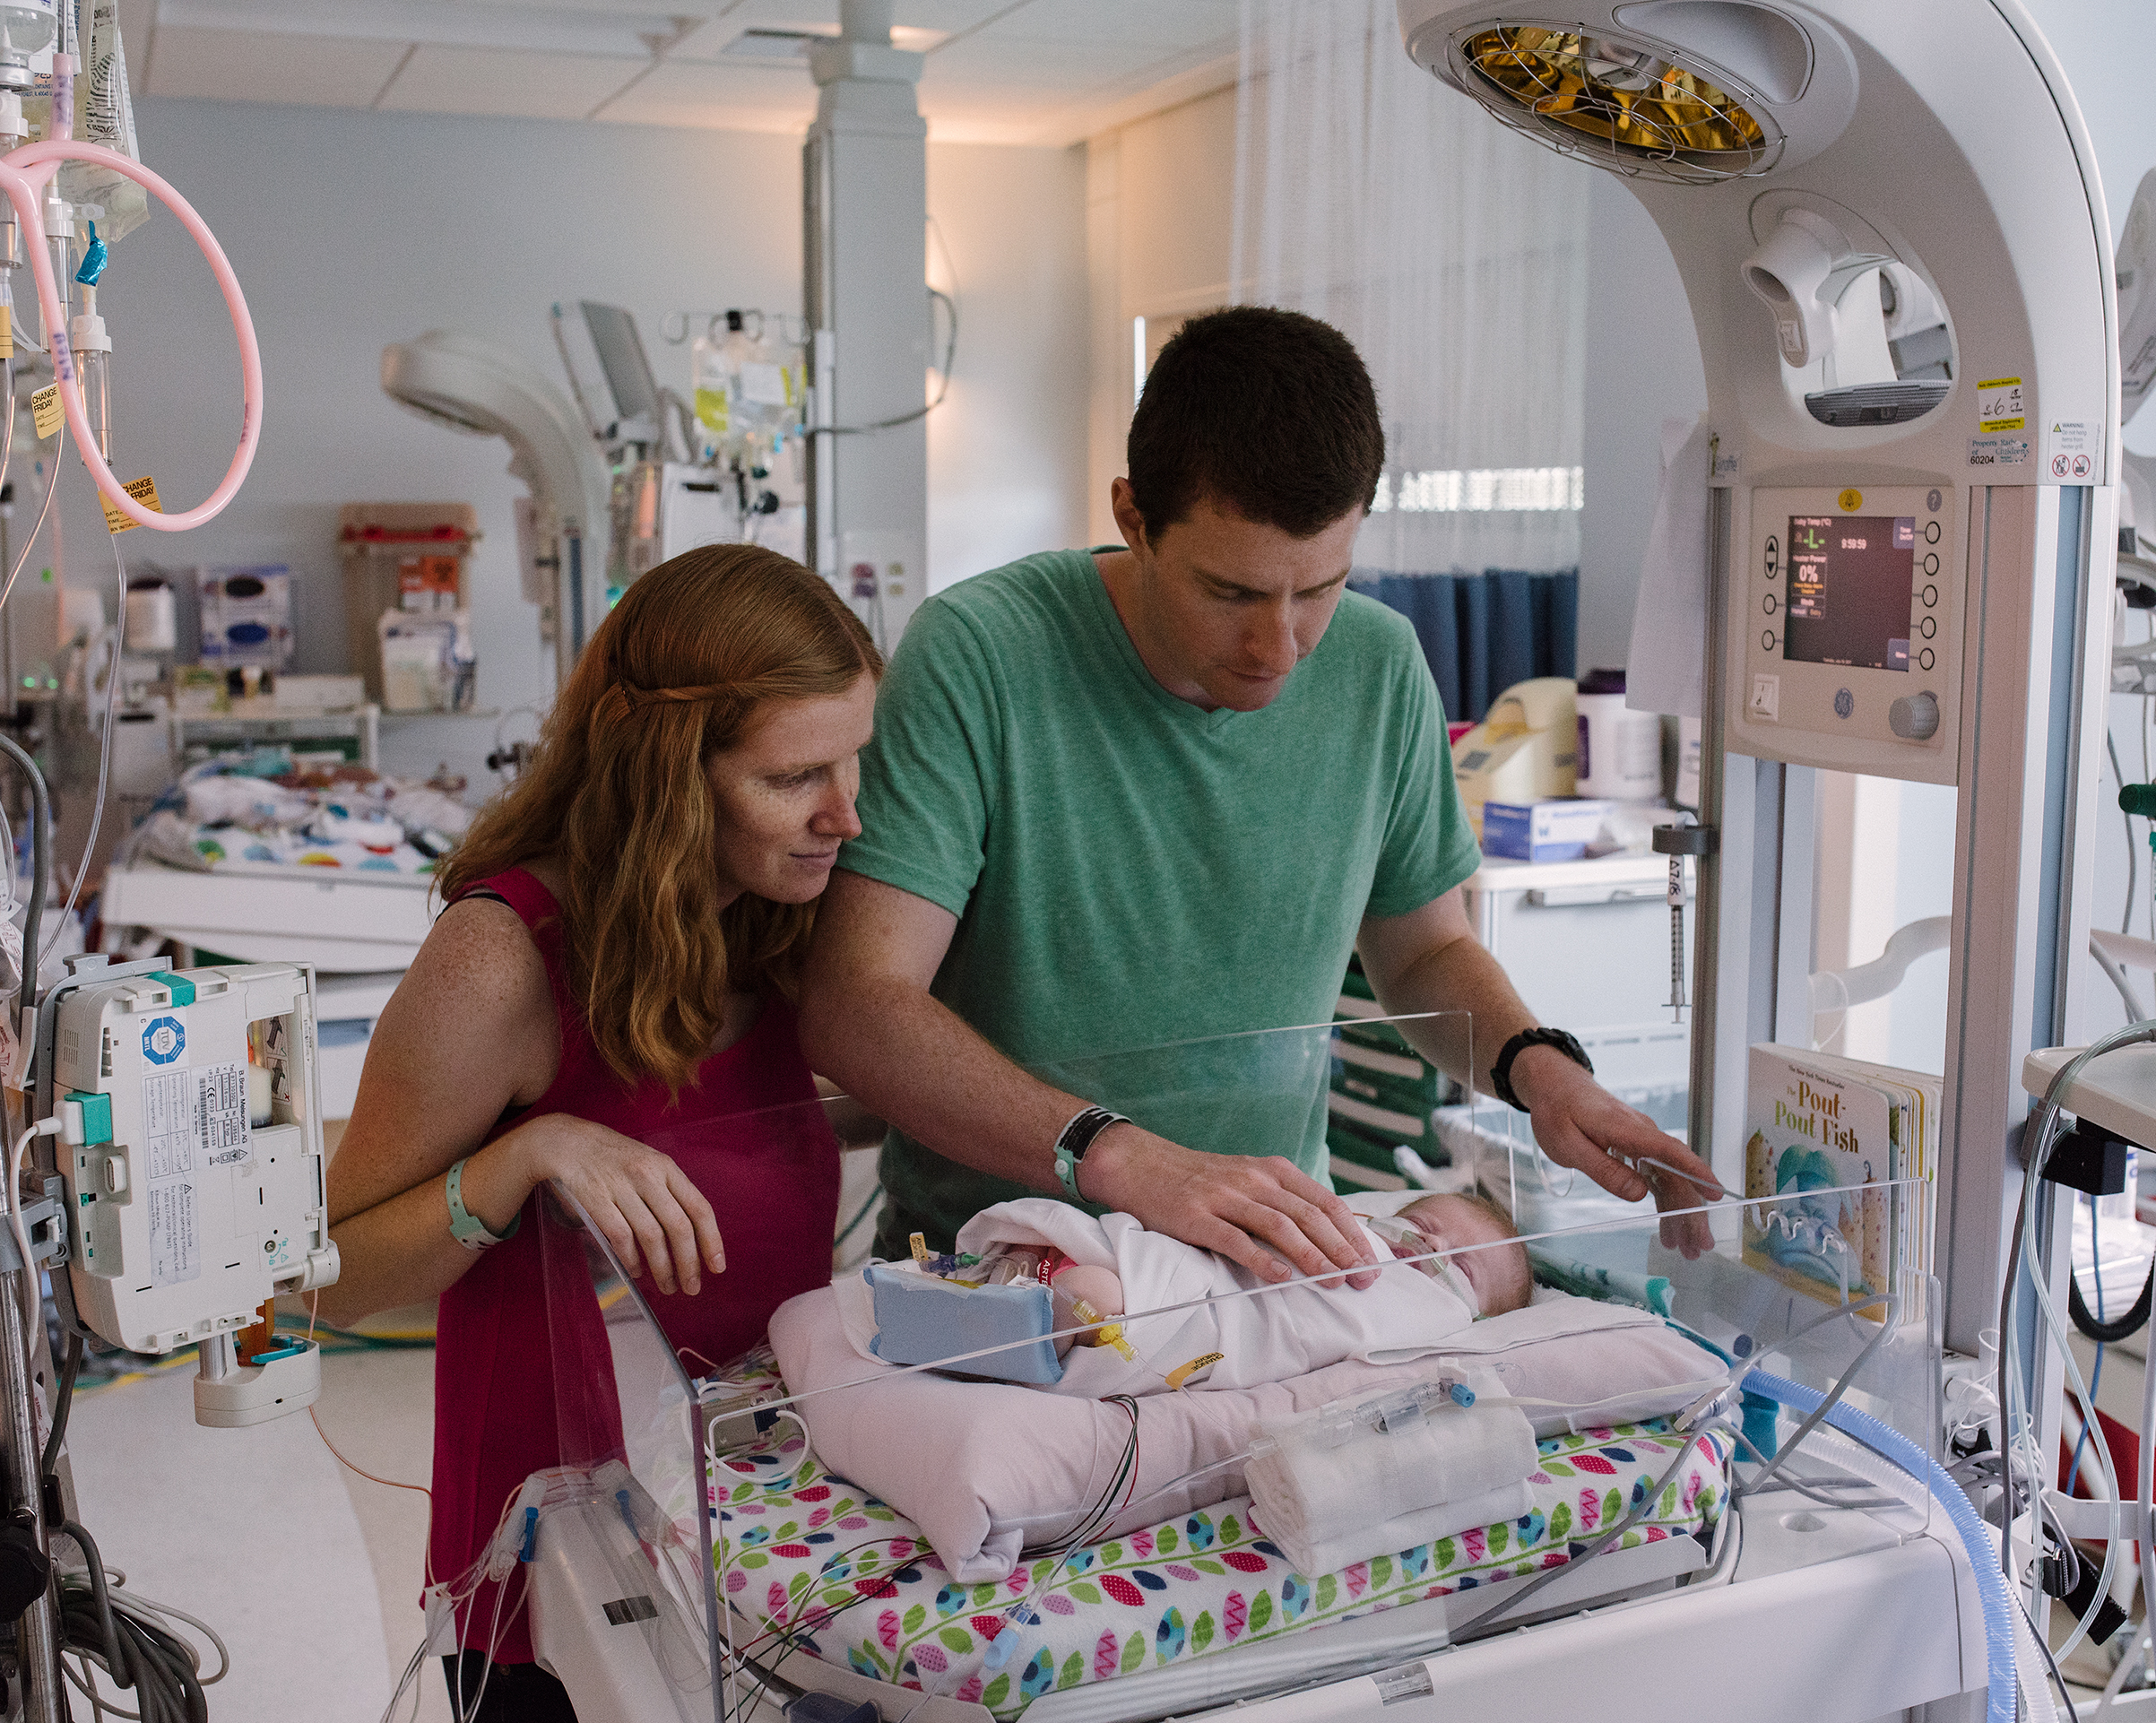 Elizabeth and Tristan Holbrook spend time with their newborn daughter Grace, Rady Children's Hospital, San Diego, CA, July 18, 2017